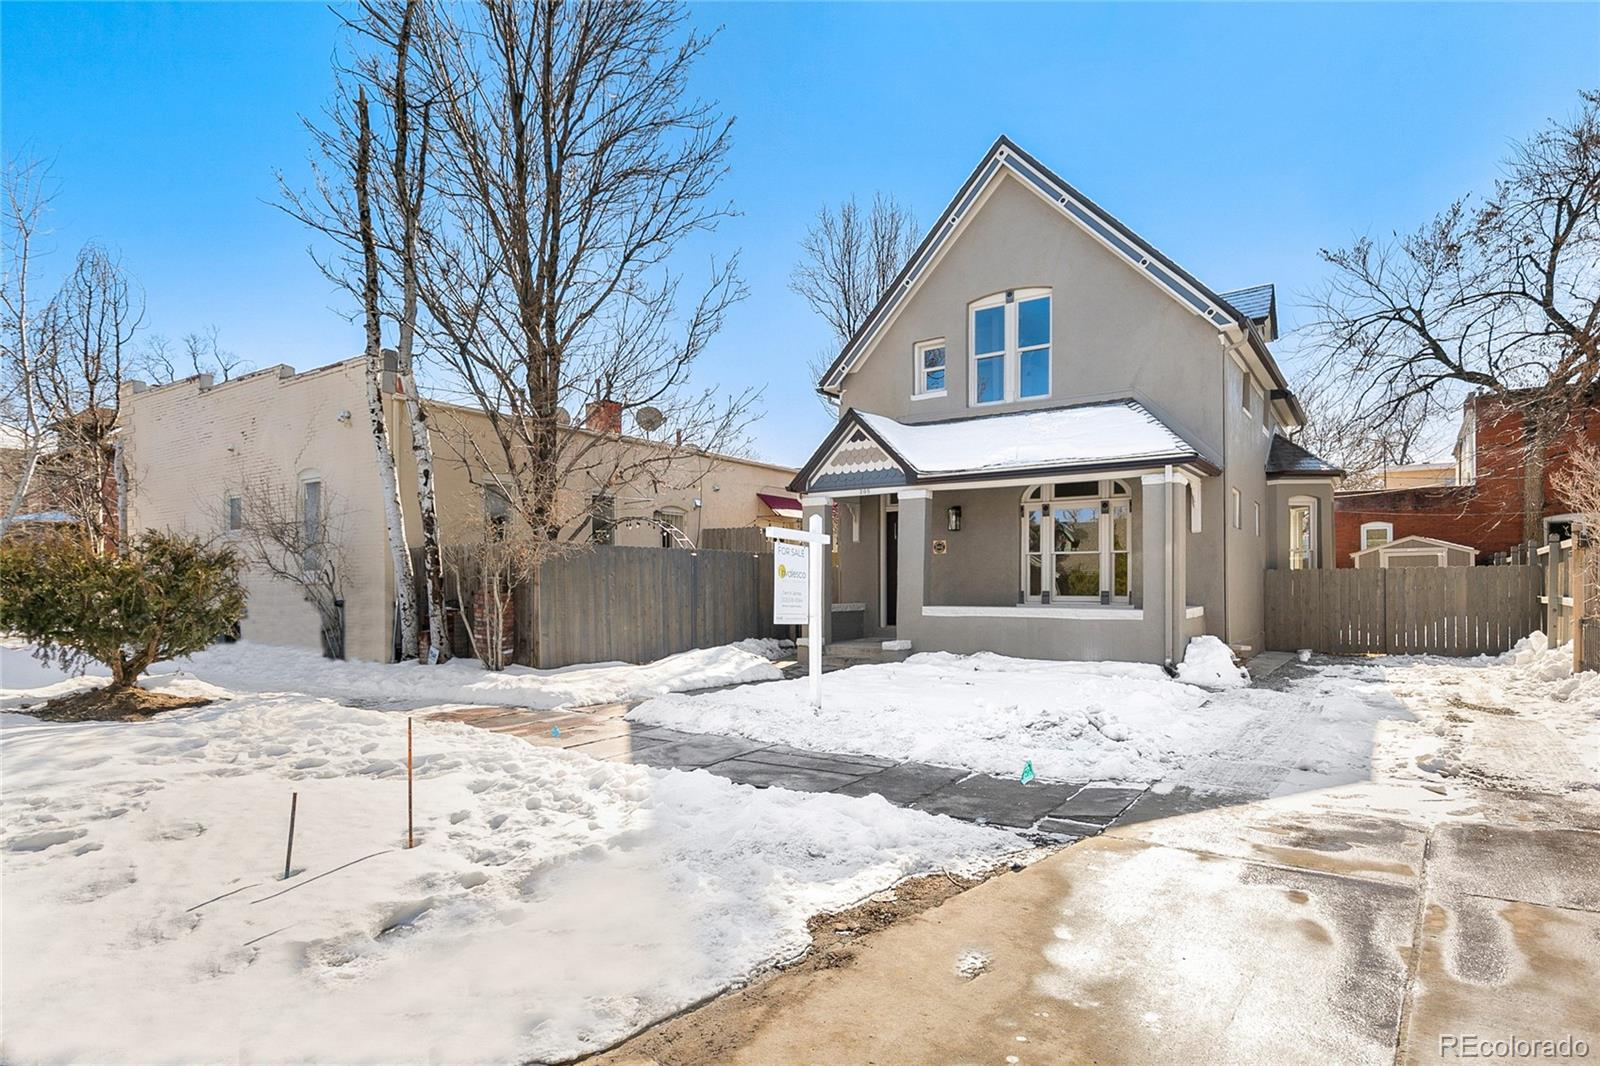 MLS# 4666448 - 25 - 308 W 4th Avenue, Denver, CO 80223